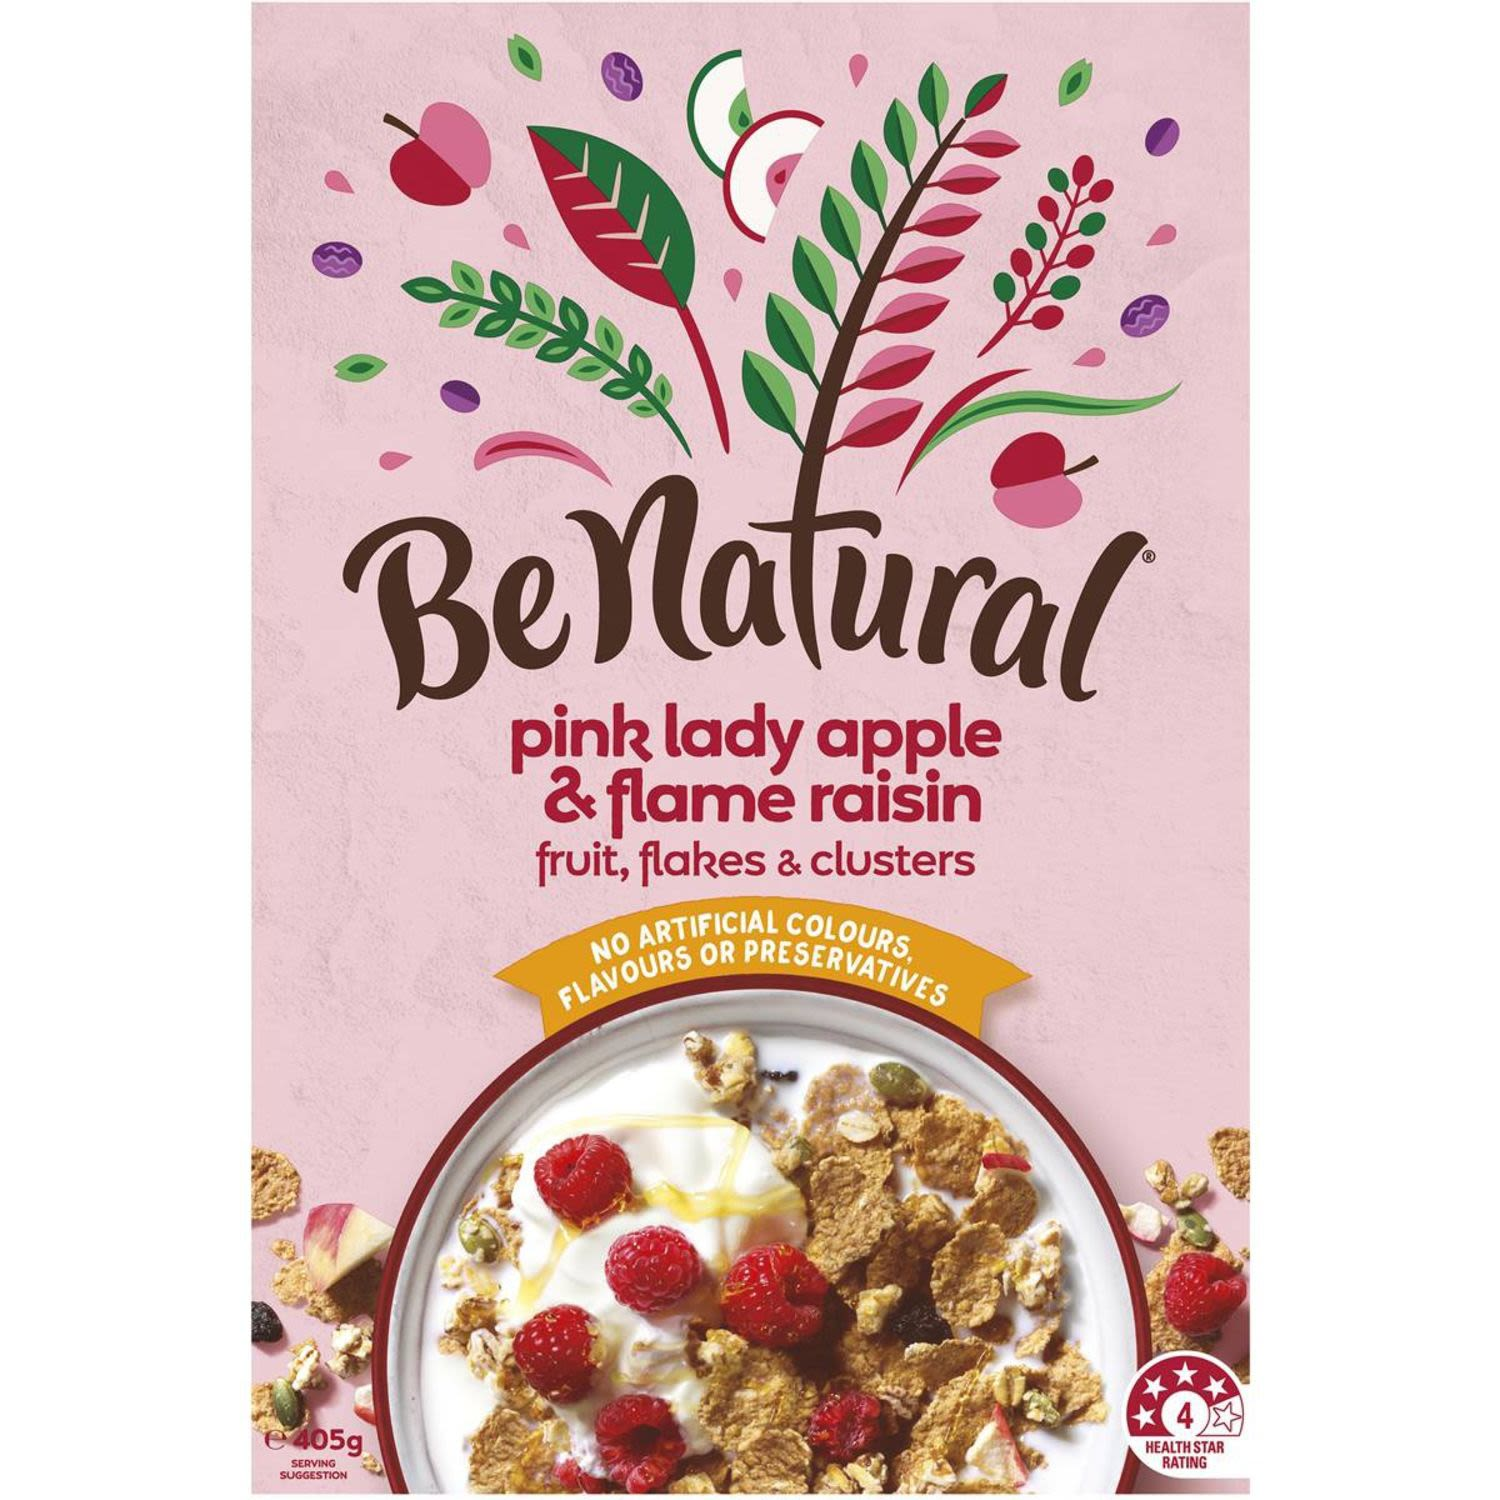 Be Natural Breakfast Cereal With Pink Lady Apple & Flame Raisins, 405 Gram